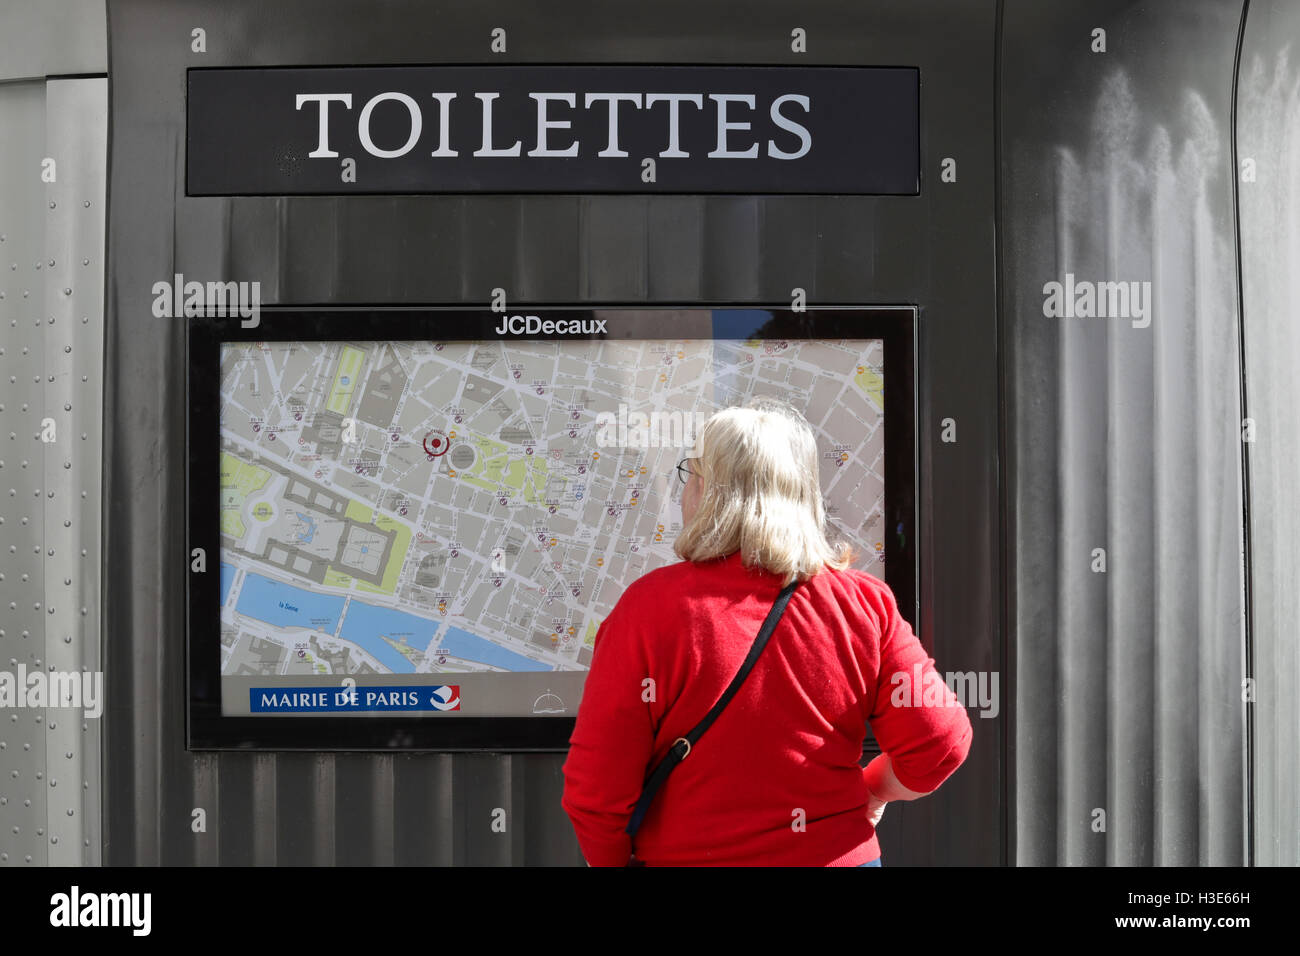 Tourist looking at a map of the city outdoors of a public toilette, in Paris. France - Stock Image